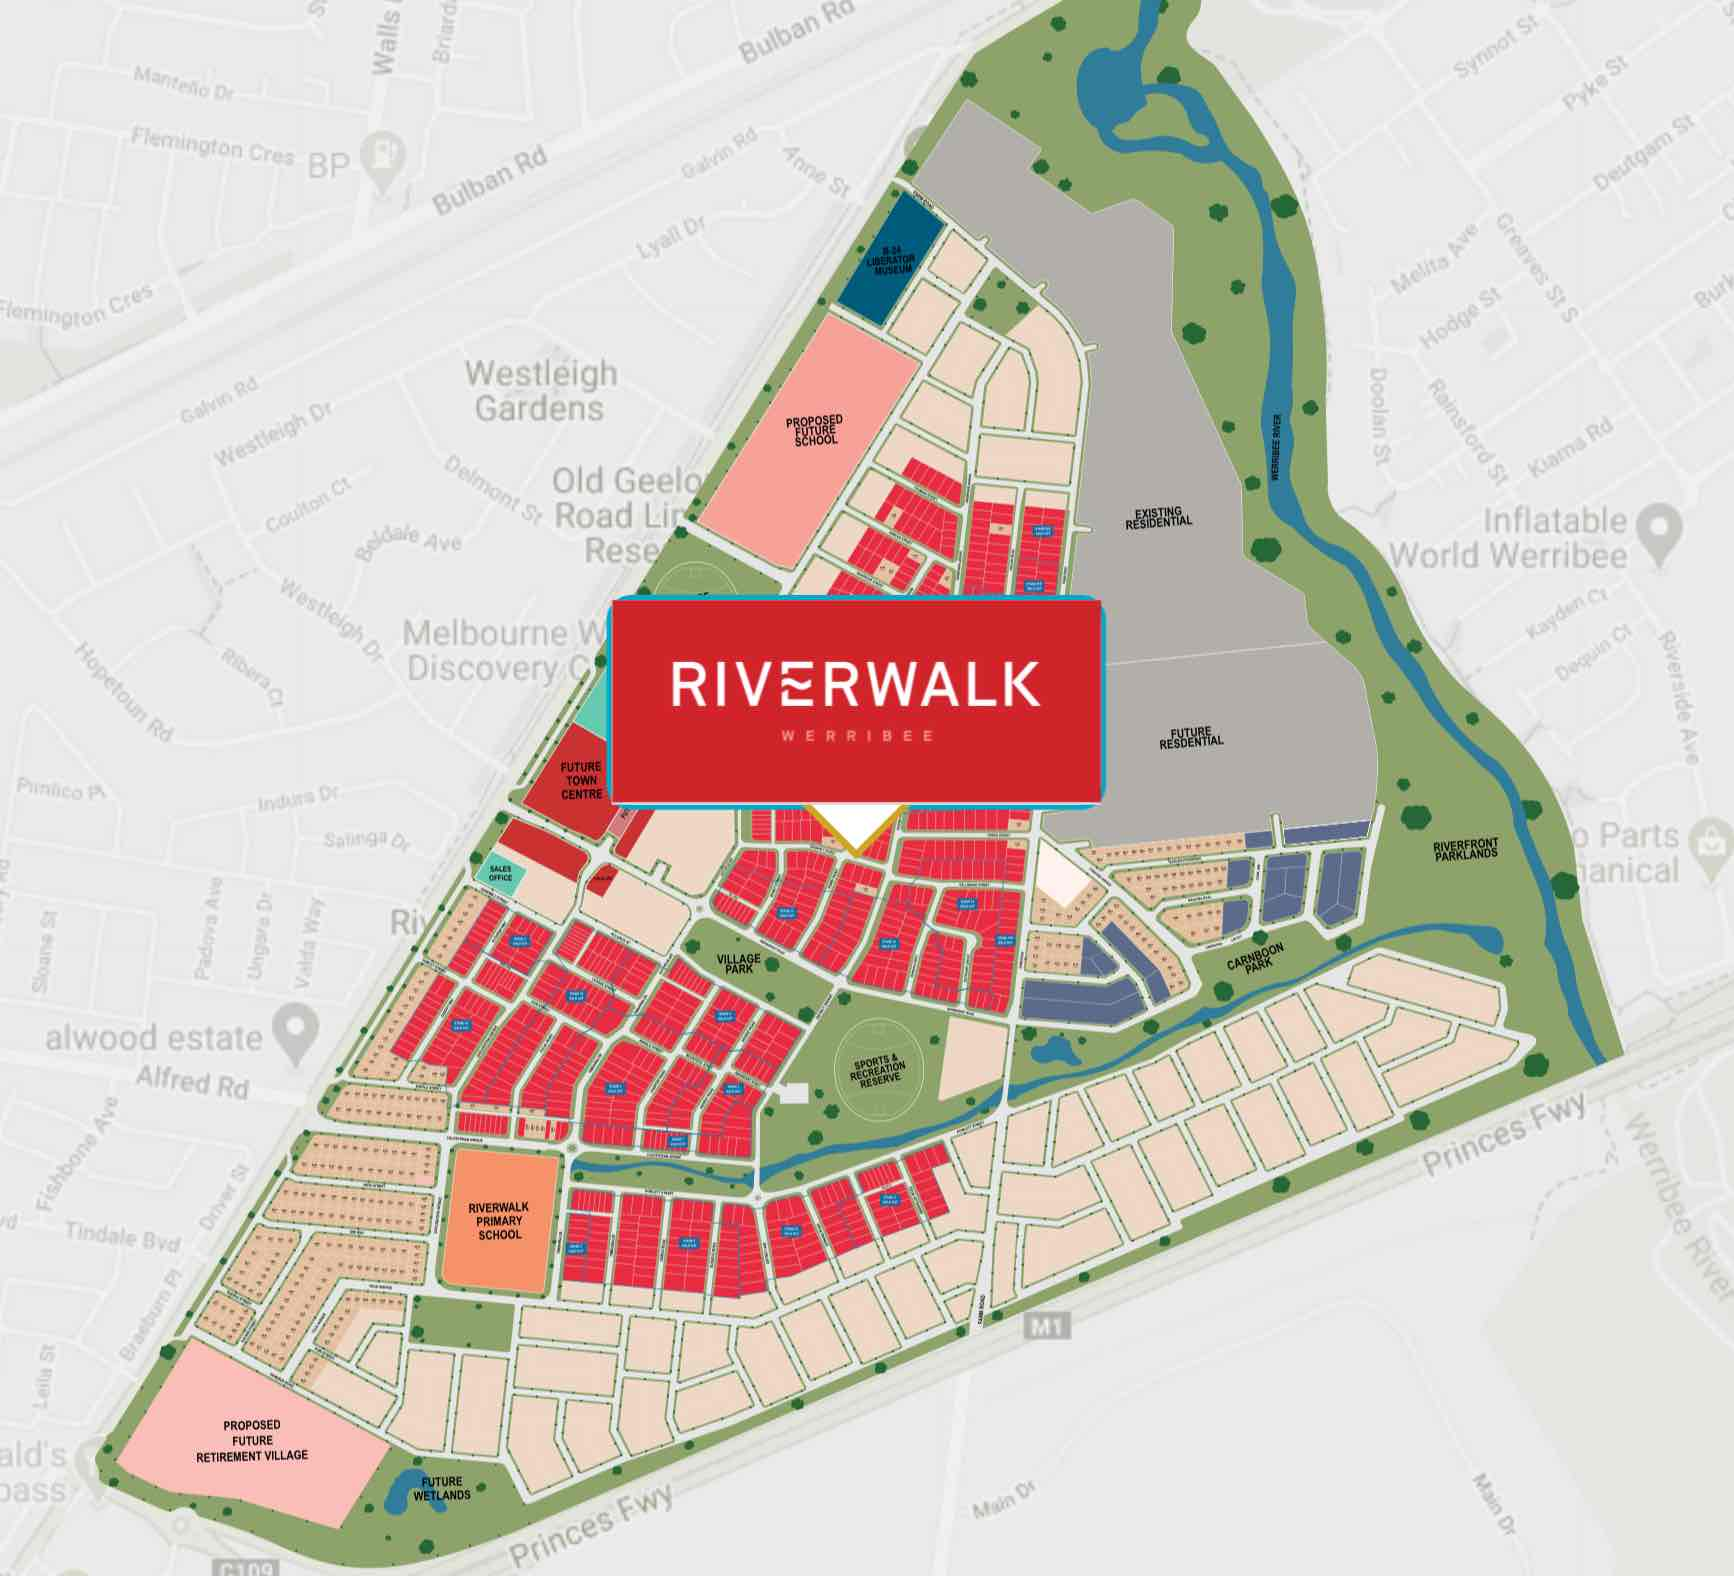 Riverwalk Werribee Masterplan